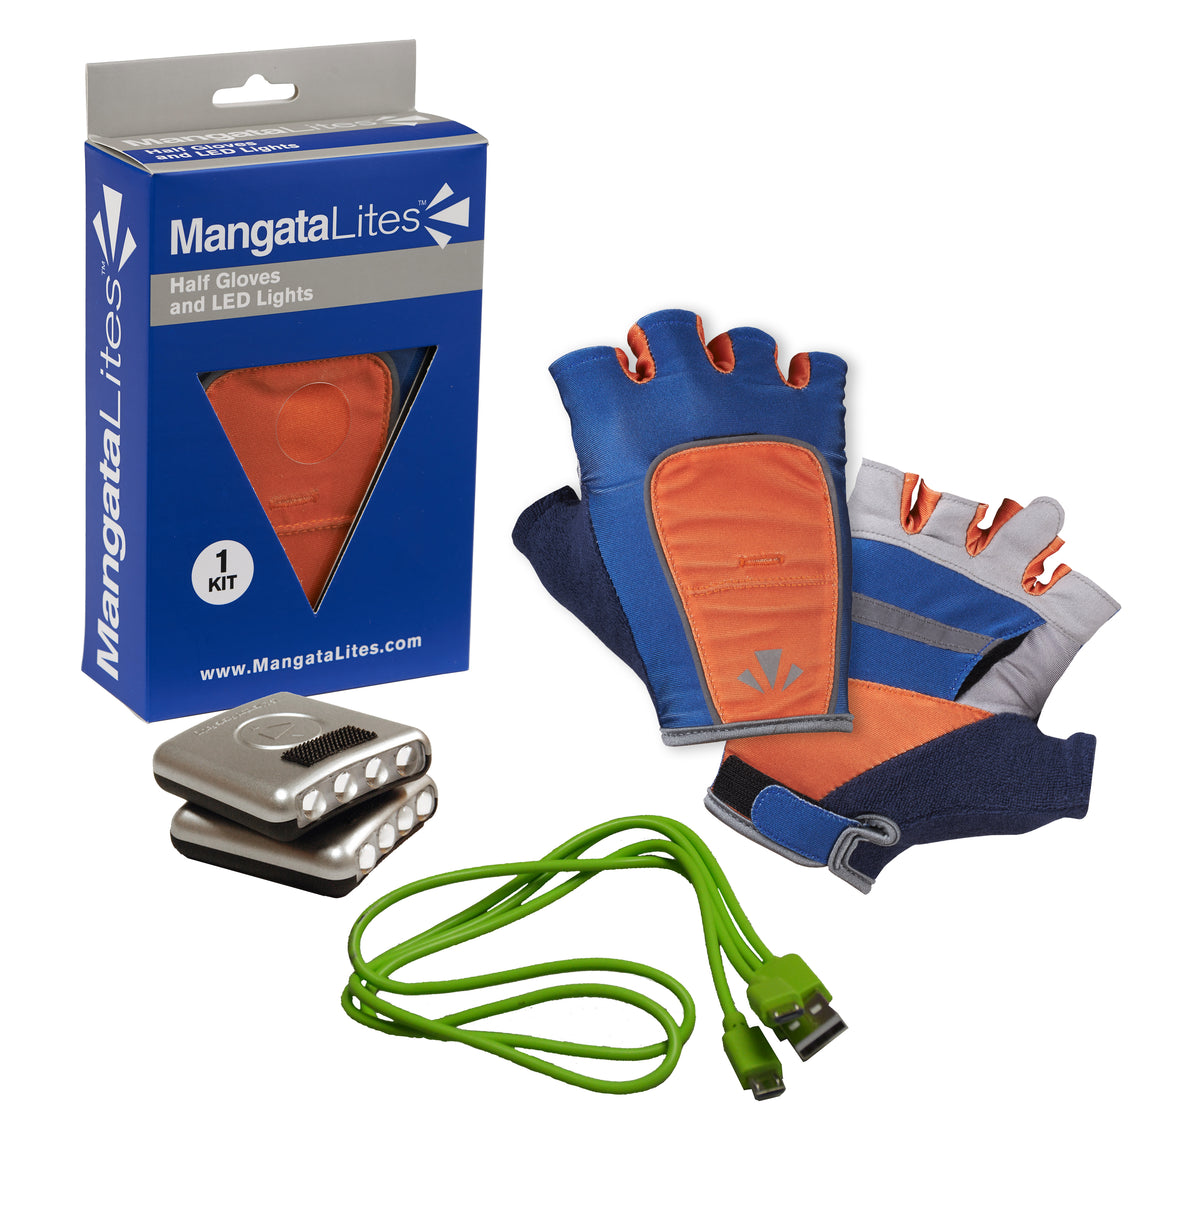 MangataLites Blue & Orange Half Gloves Kit (Lights Included)